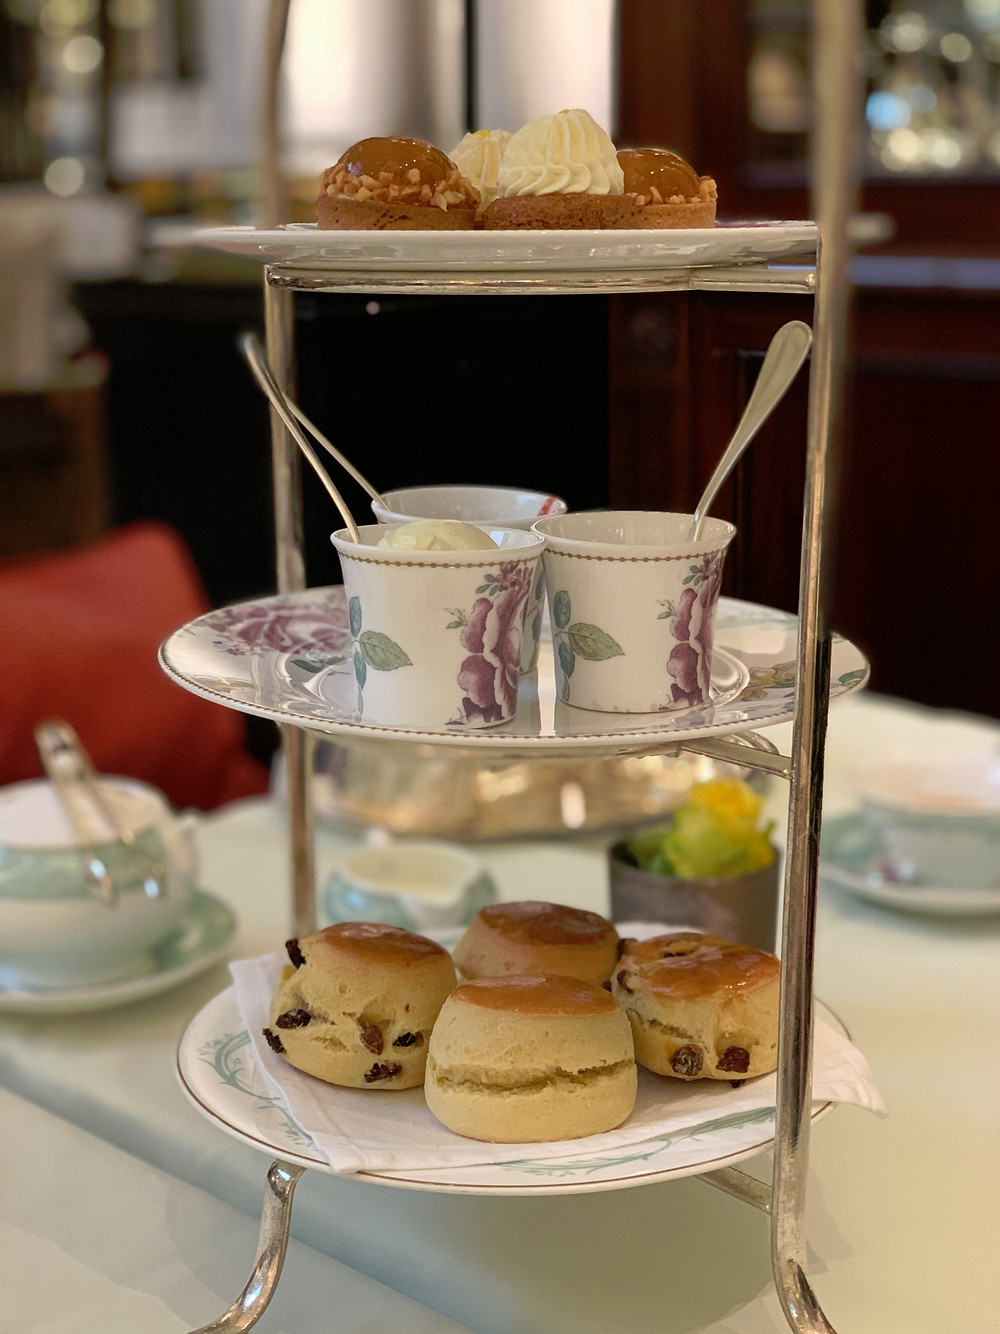 High tea at the Savoy in London